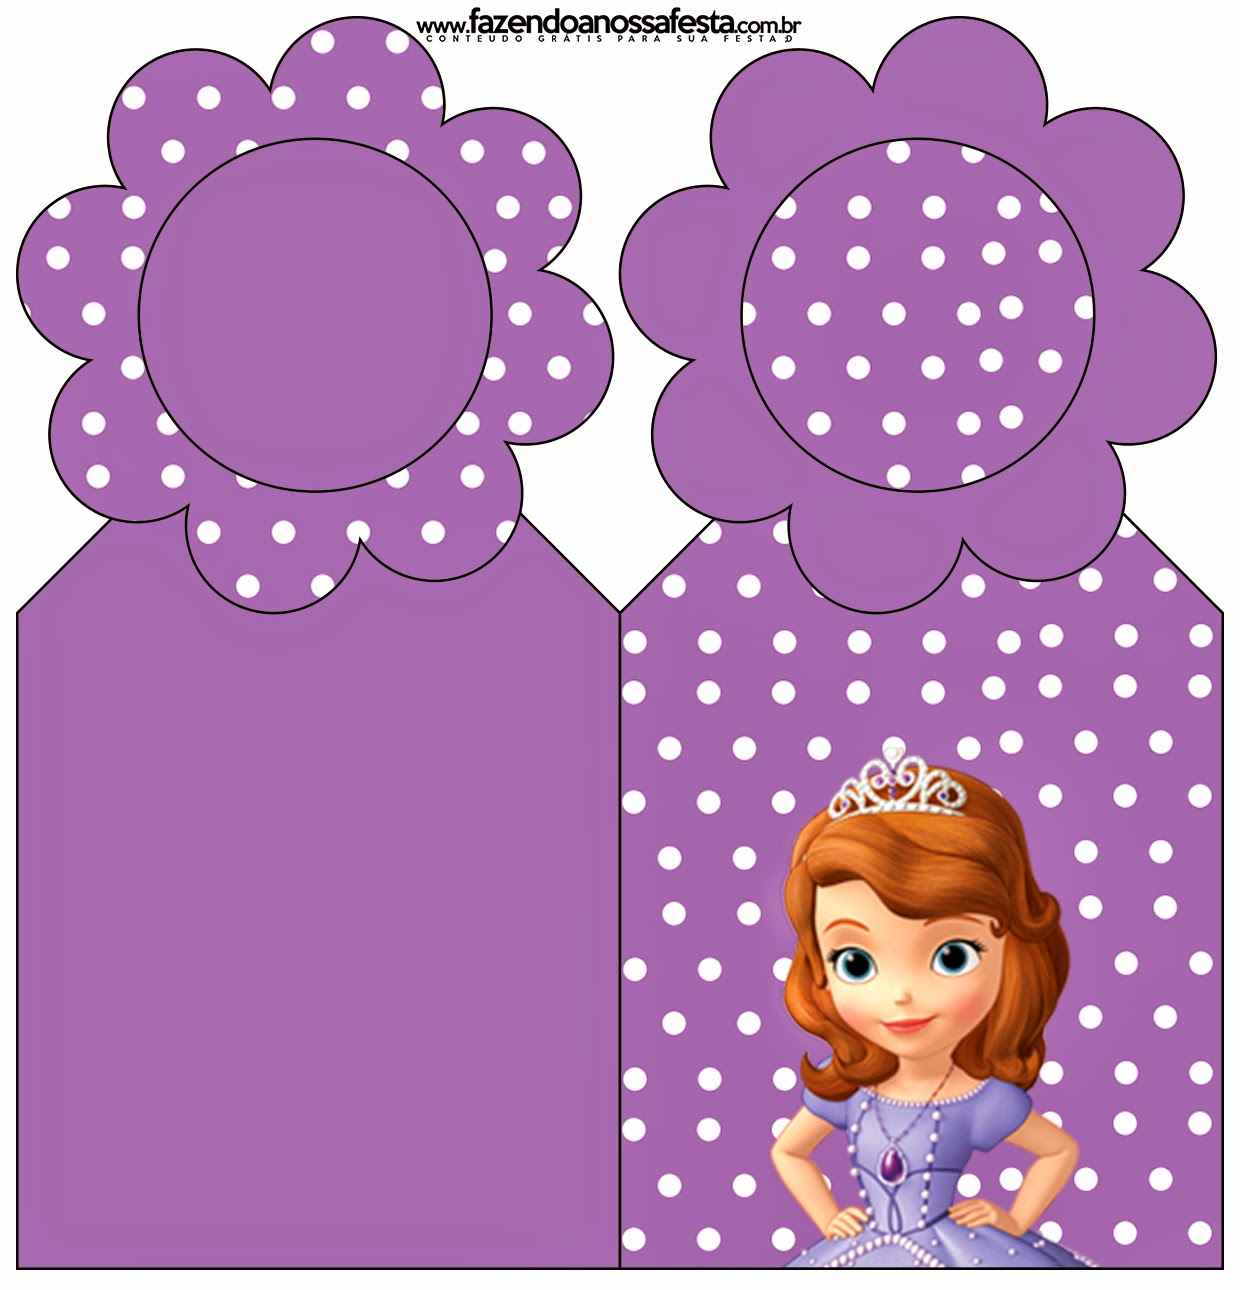 Sofia the First Free Party Printables and Images Oh My Fiesta